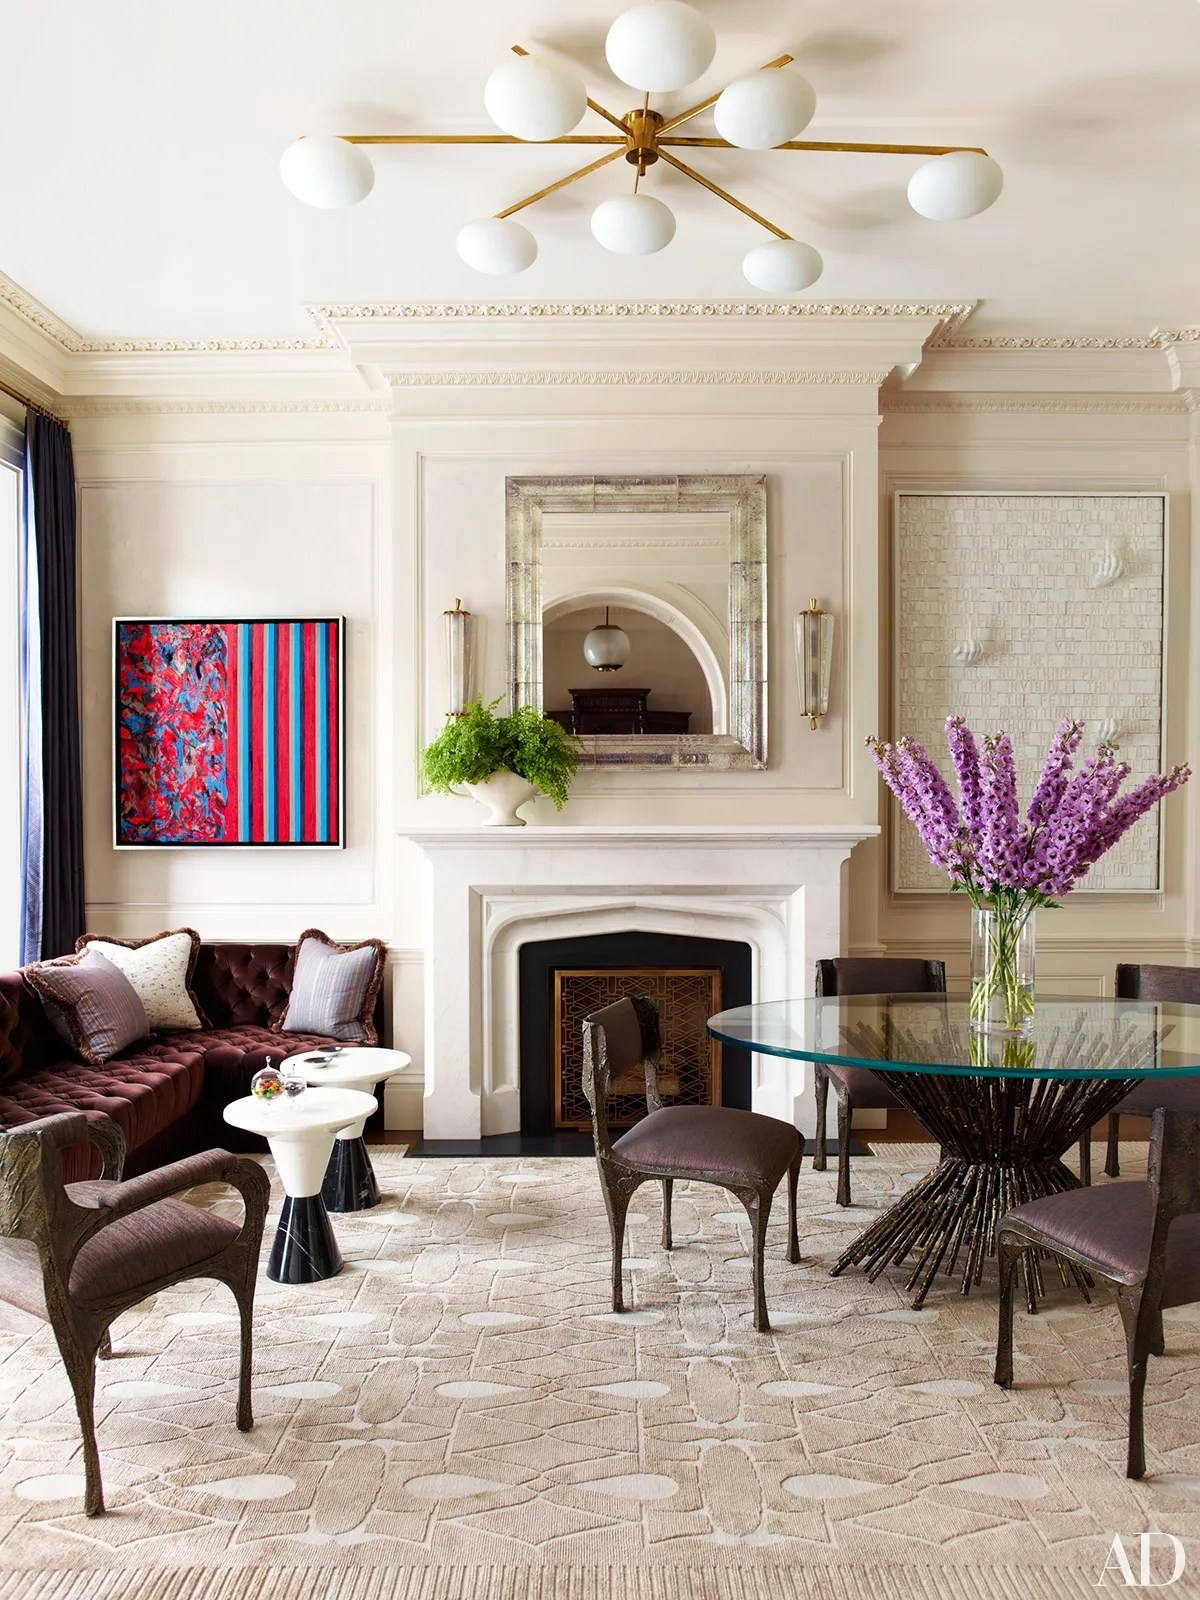 New York Townhouse Restored by Peter Pennoyer and Shawn